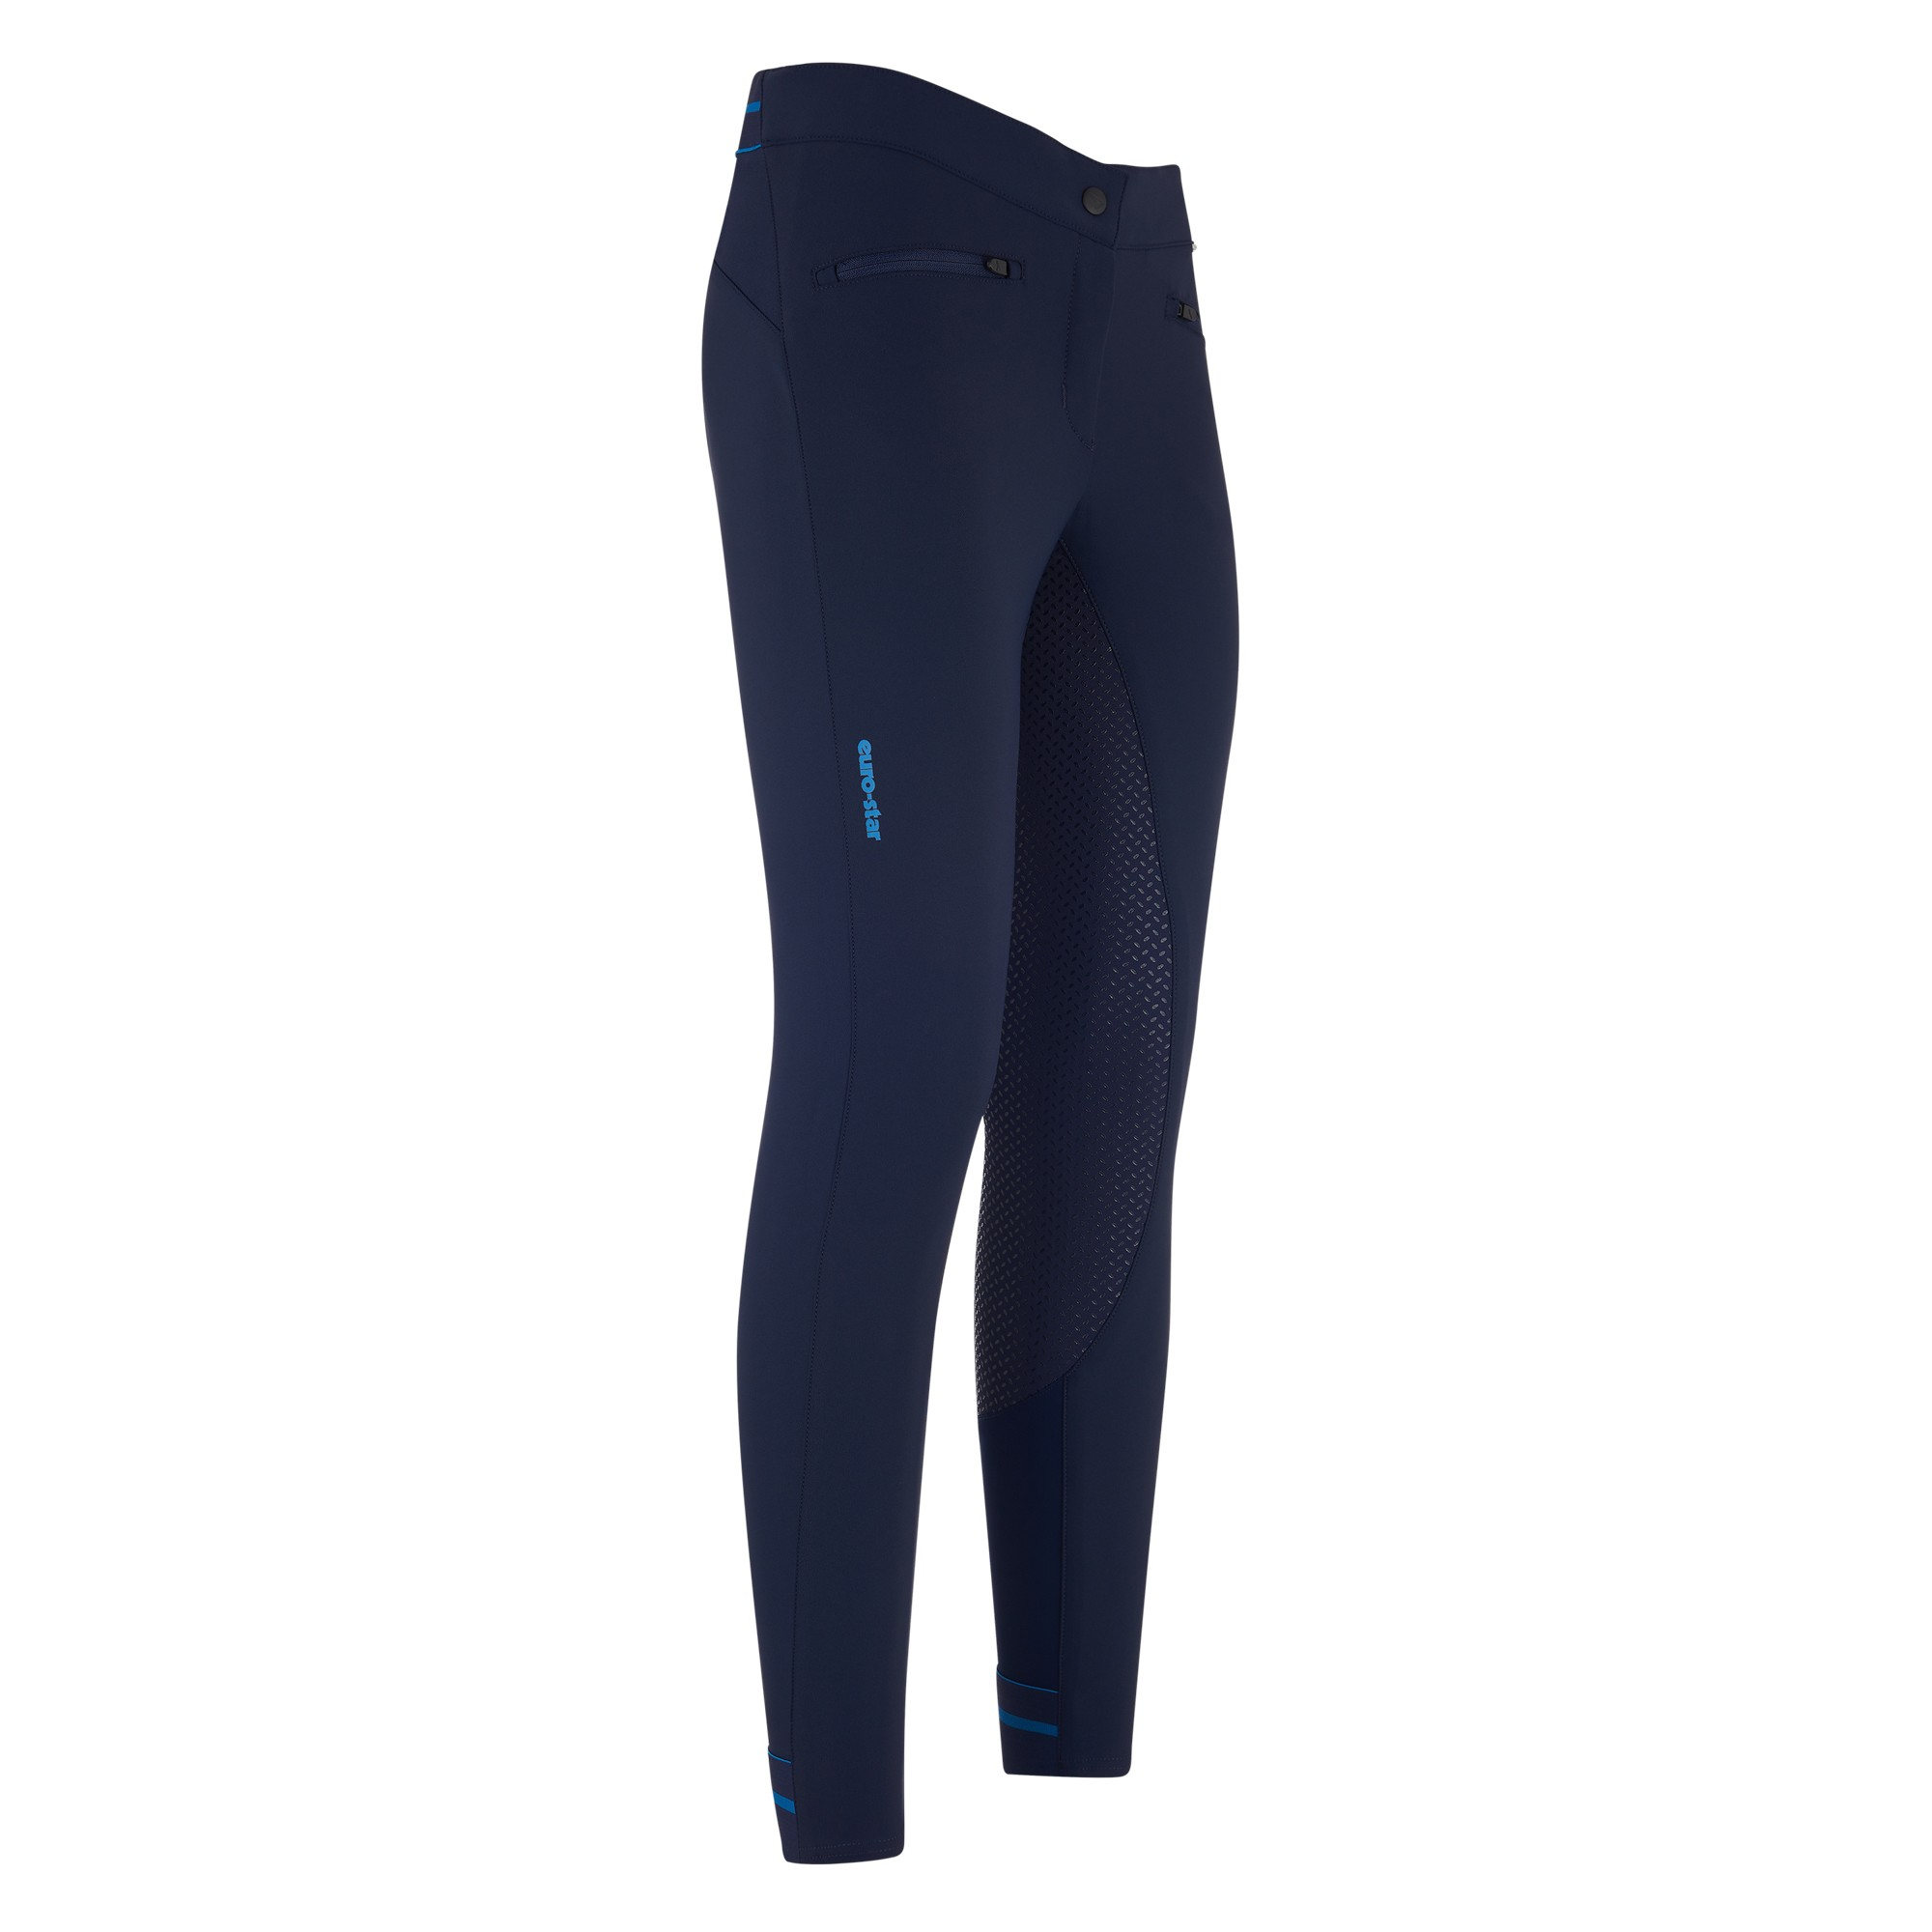 Euro Star - Riding breeches Moonlight FullGrip Advanced